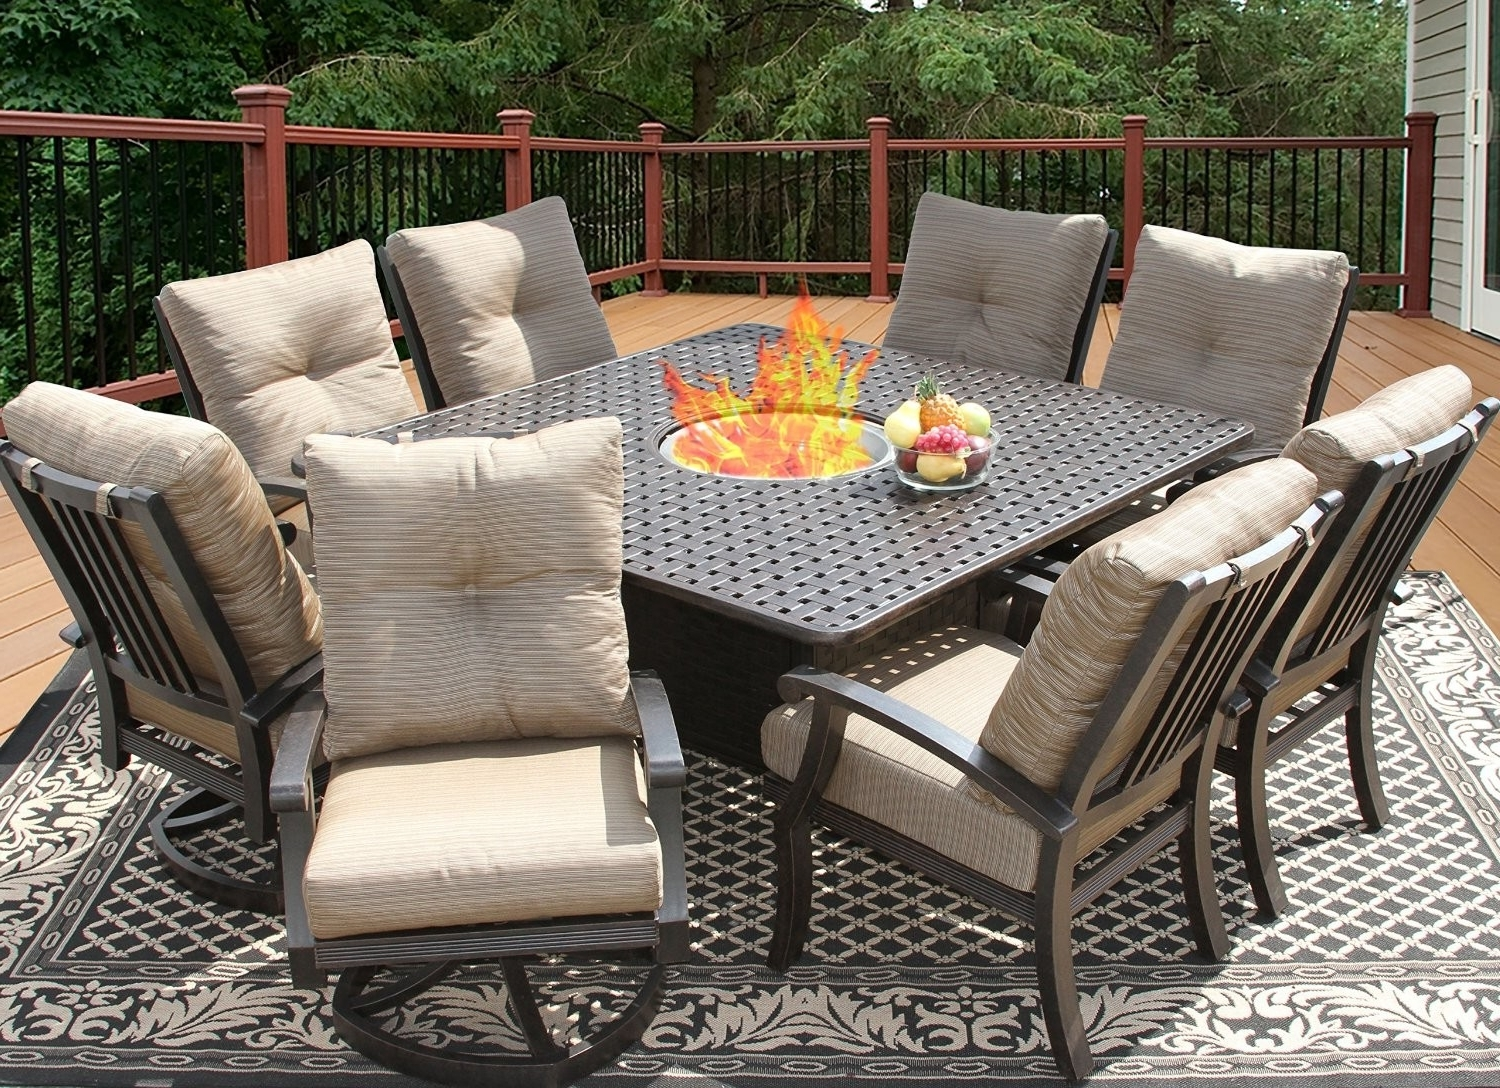 8 Seat Outdoor Dining Tables In Preferred Outdoor Dining Tables For 8 – Lisaasmith (Gallery 1 of 25)